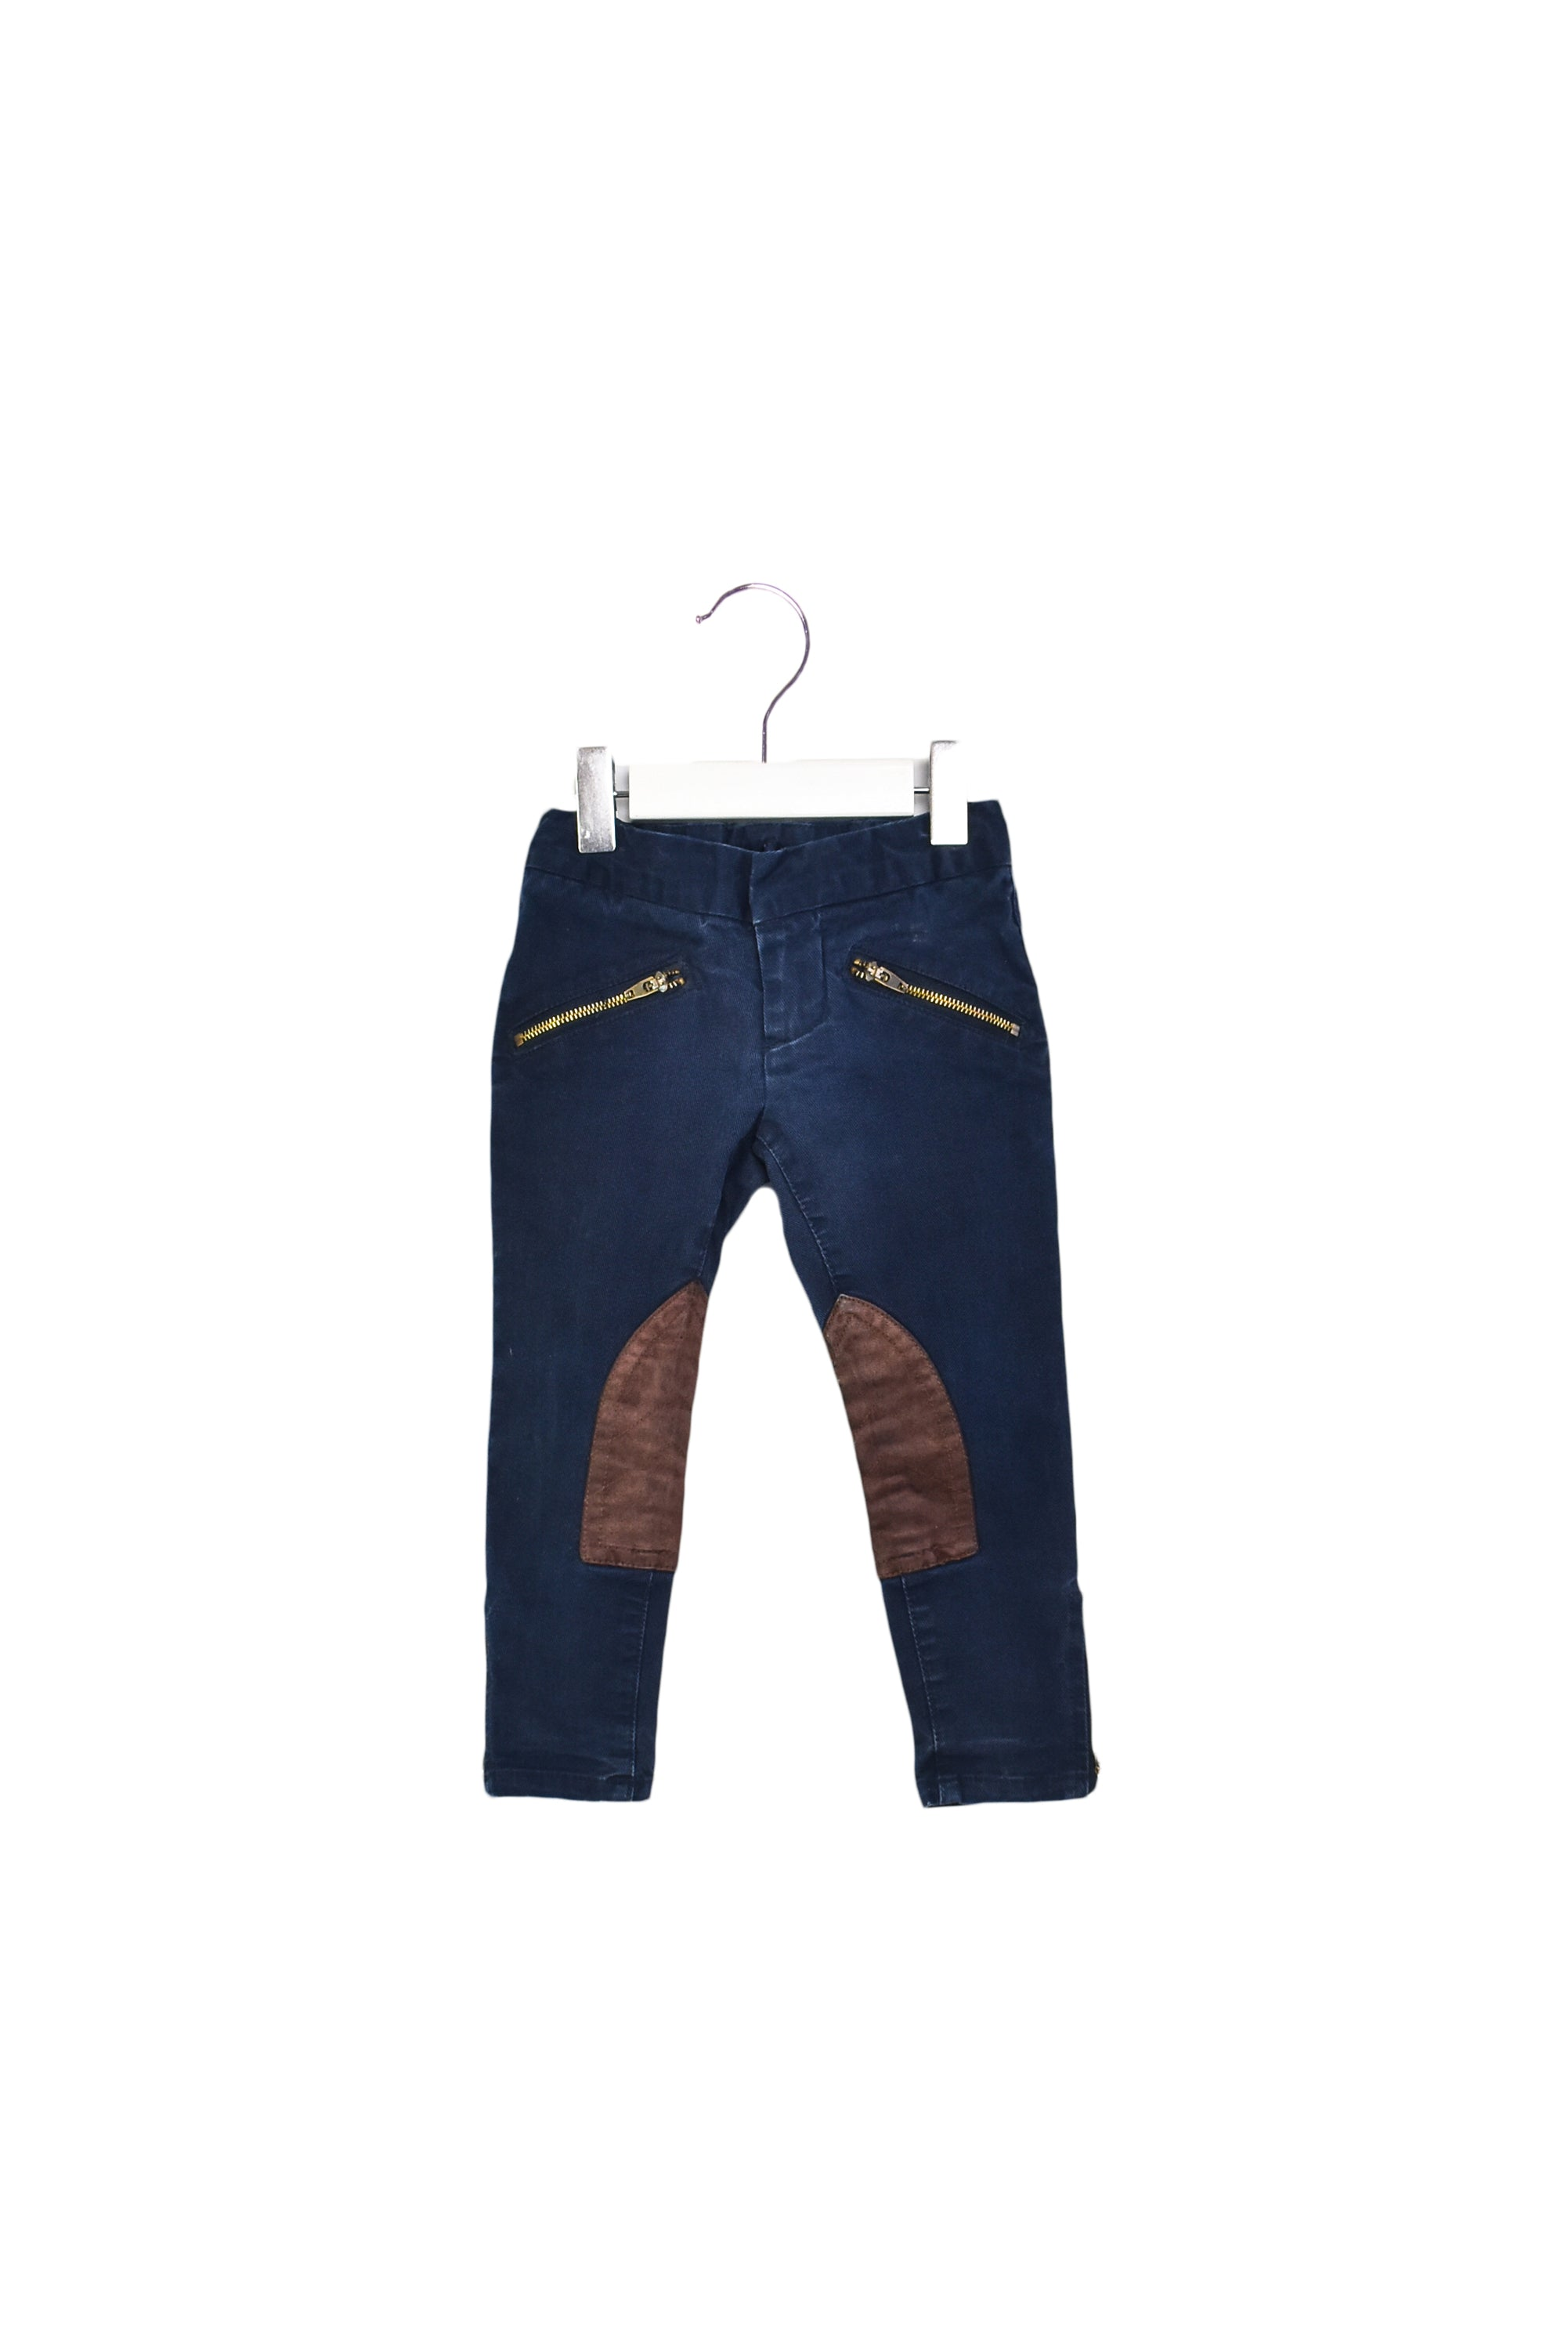 10013173 Ralph Lauren Kids ~ Pants 2T at Retykle